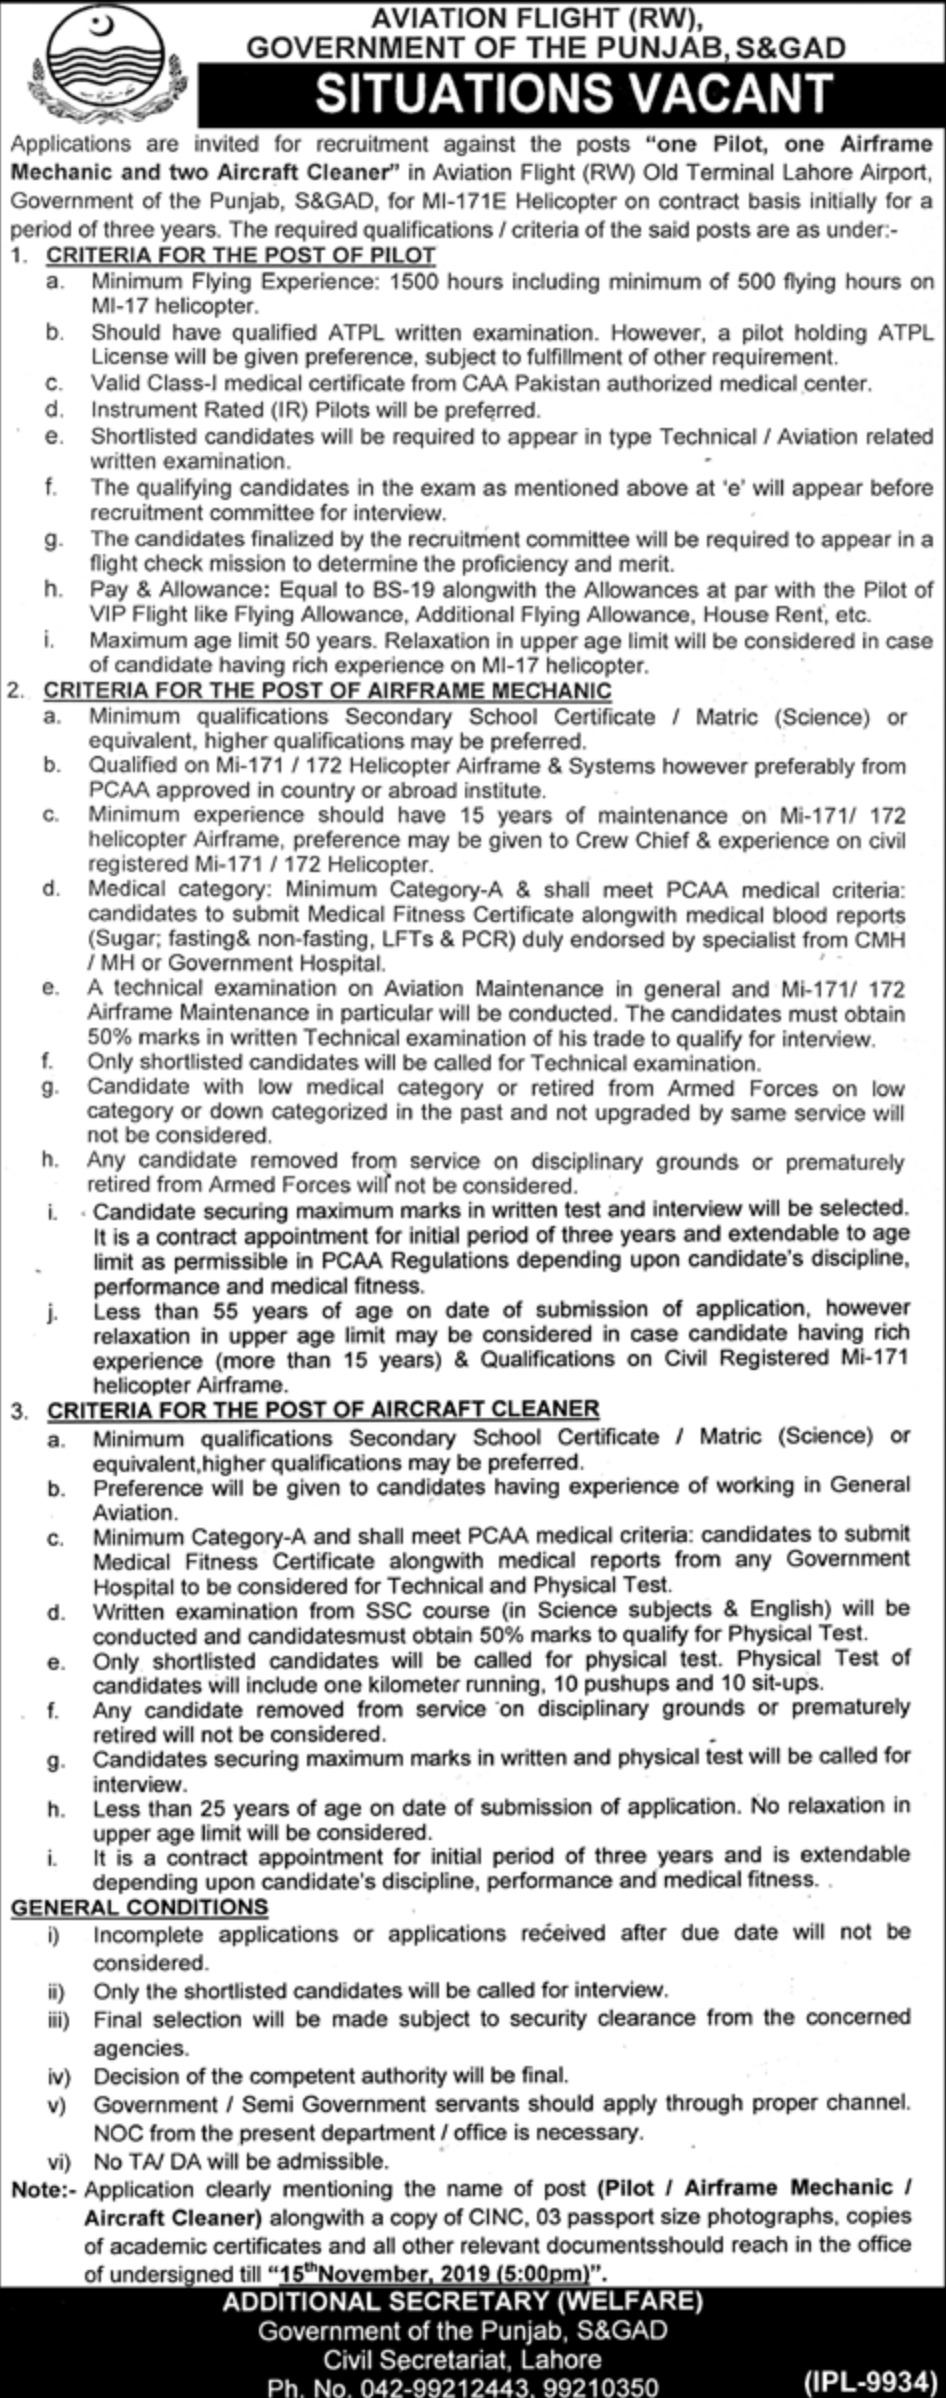 S&GAD Government of Punjab Jobs 2019 Aviation Flight Lahore Airport